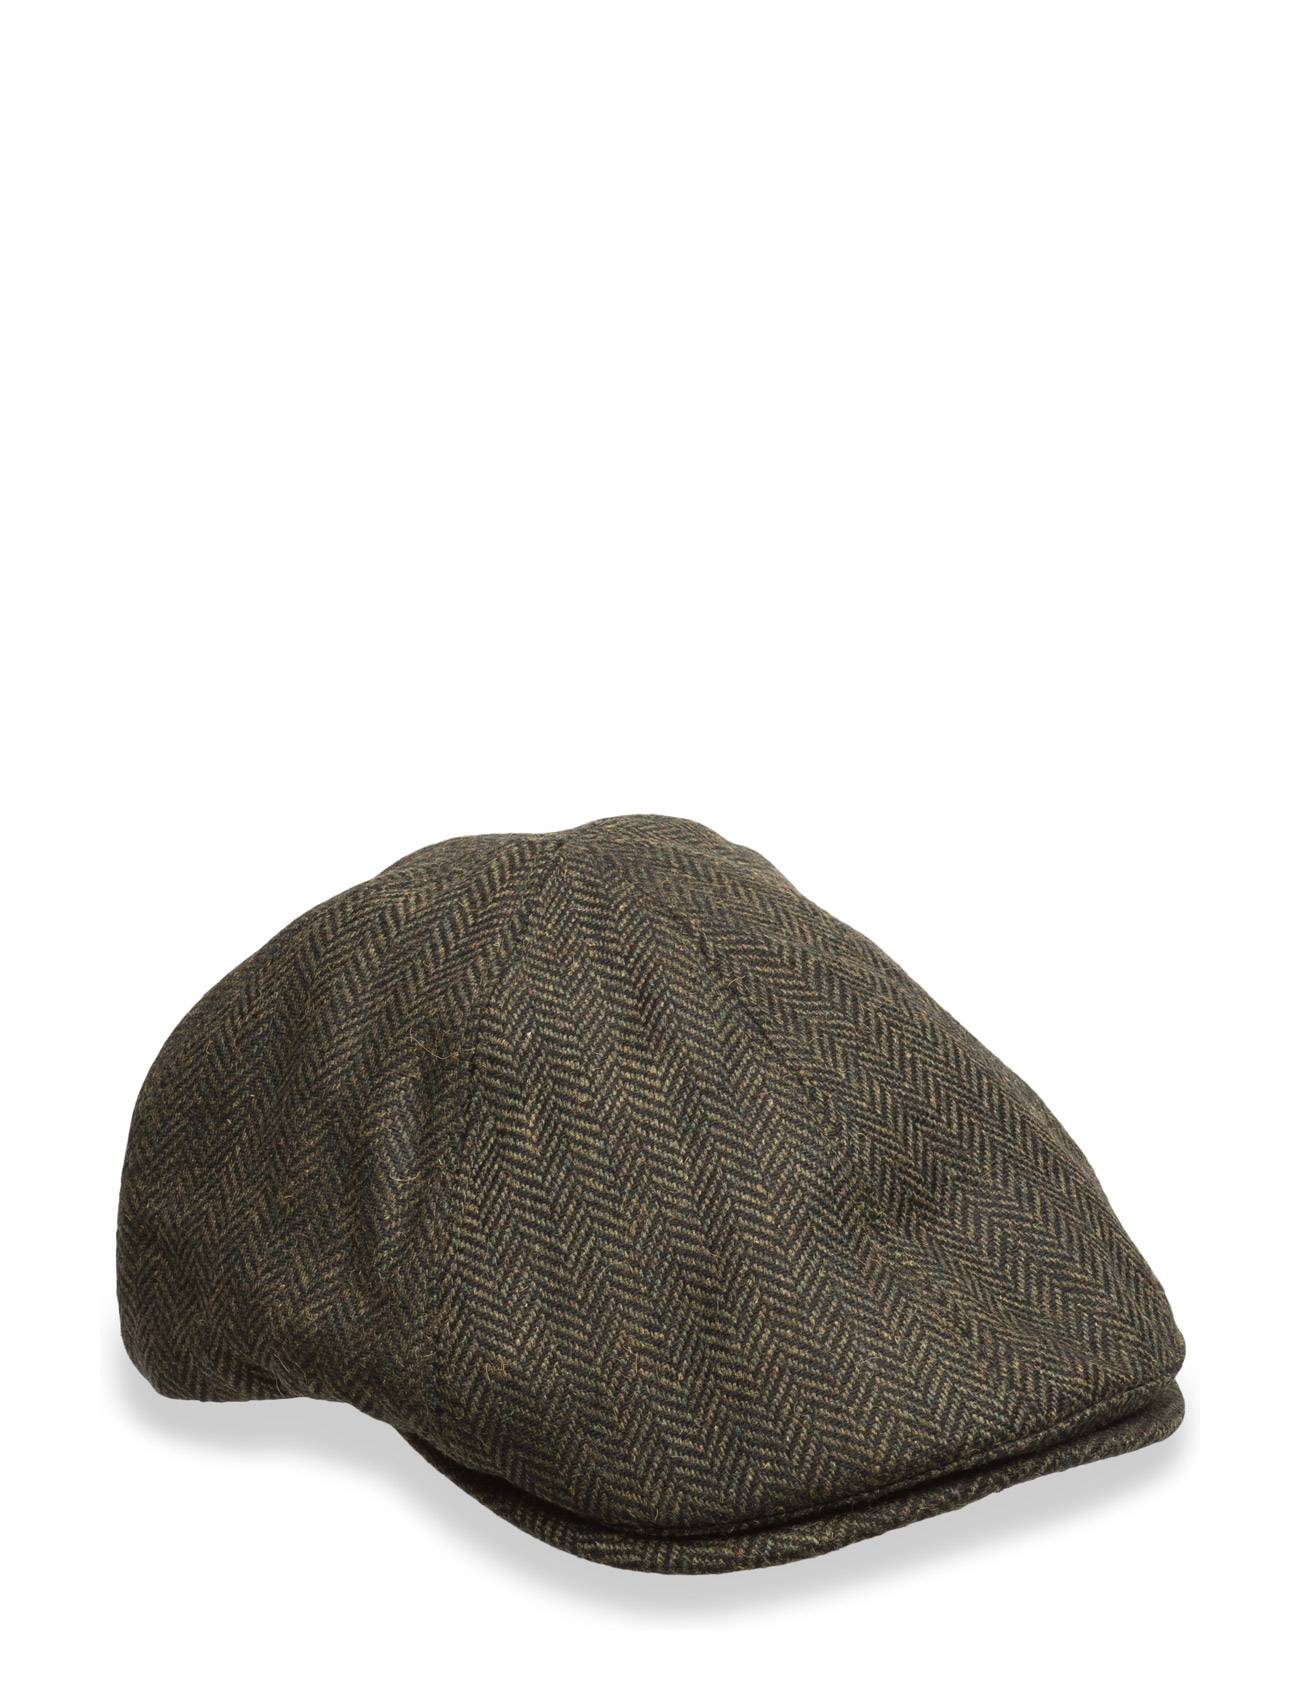 Fred Perry Herringbone Flat Cap